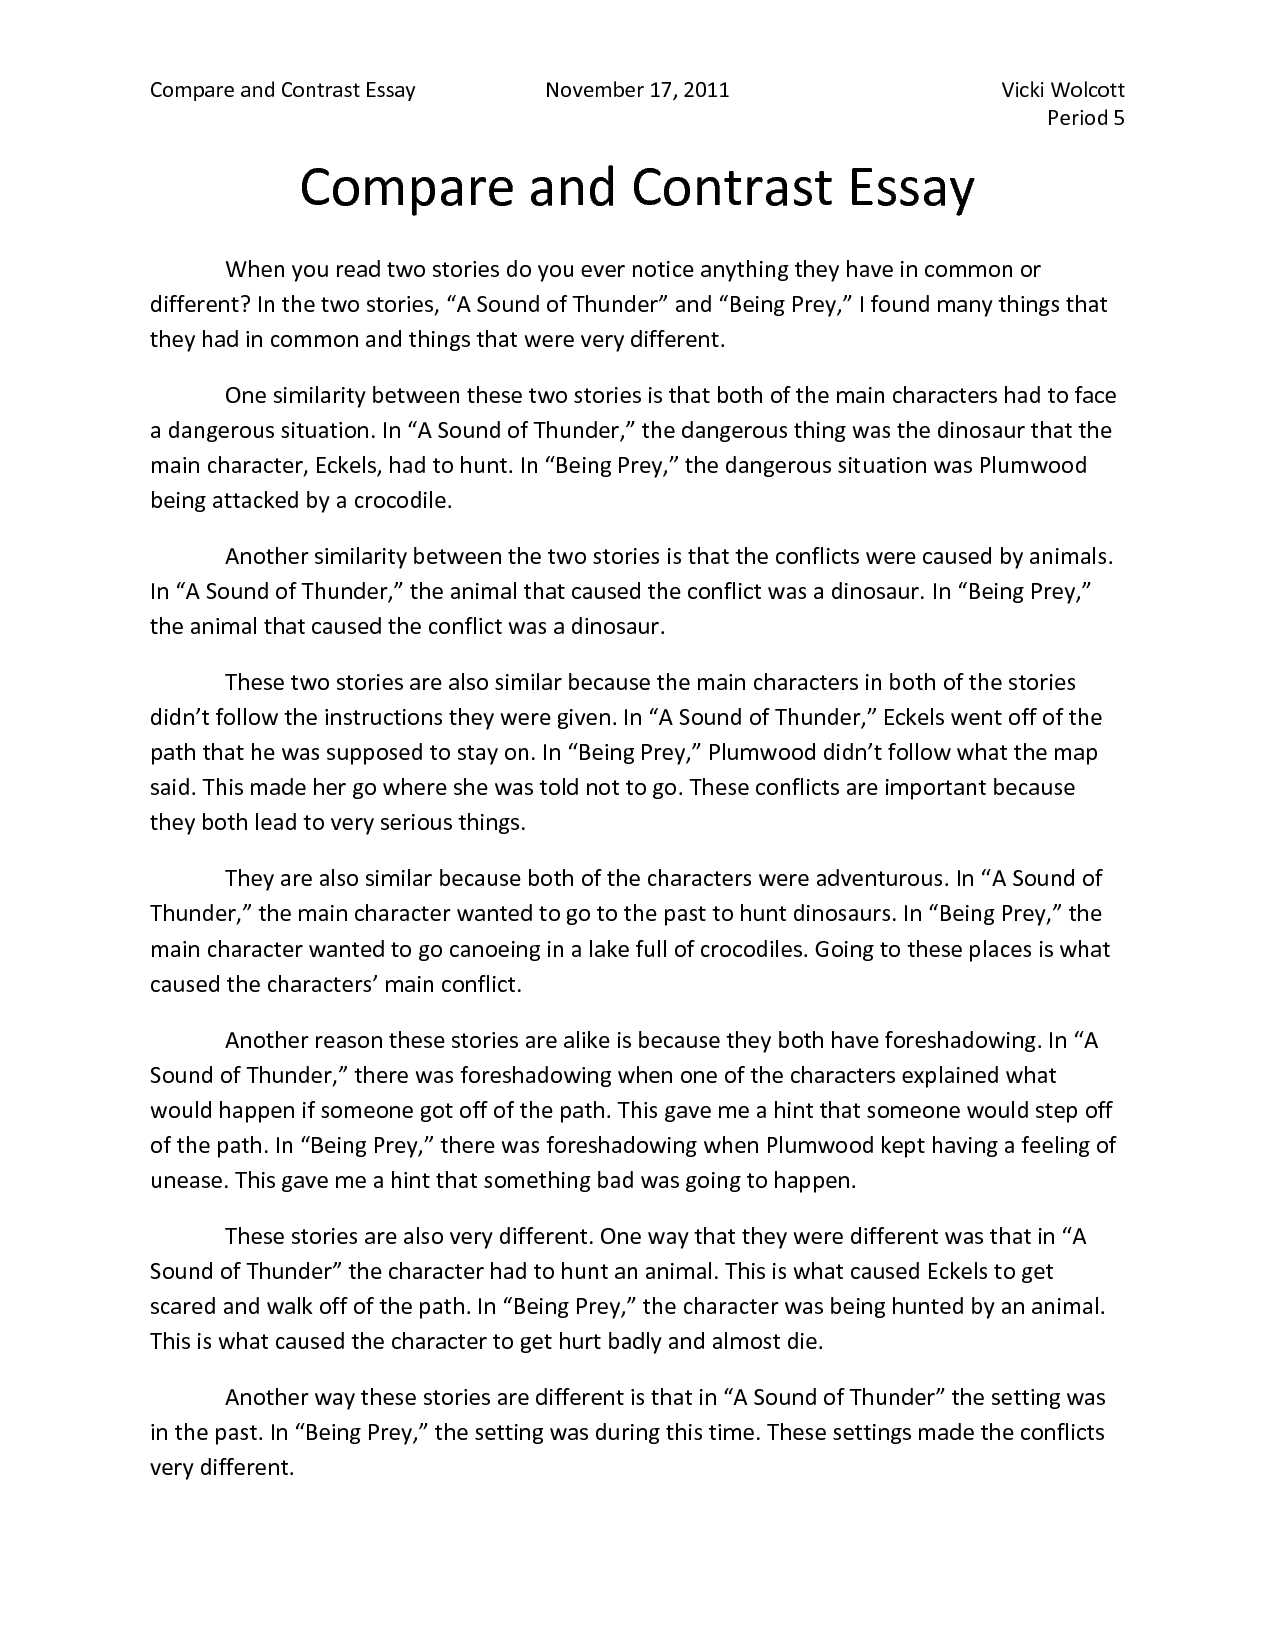 006 Compare And Contrastssay Template Gallery Drawing Art Throughout Collegexamples Introduction Question Scholarship Freedexcel Conclusionxtended Exceptional Contrast Essay For Middle School 8th Grade Examples Full